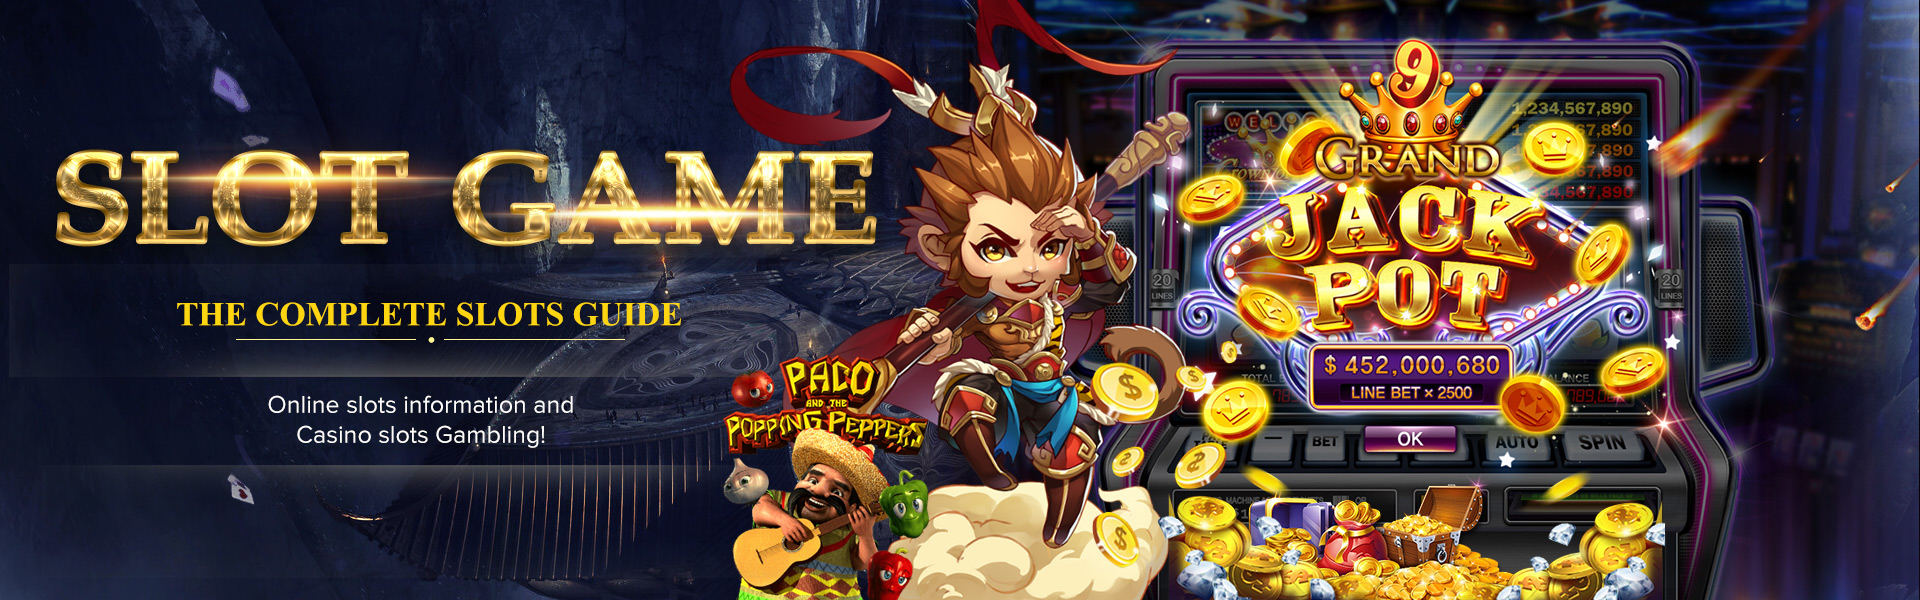 The best online slot gambling in Asia, the most complete online slots